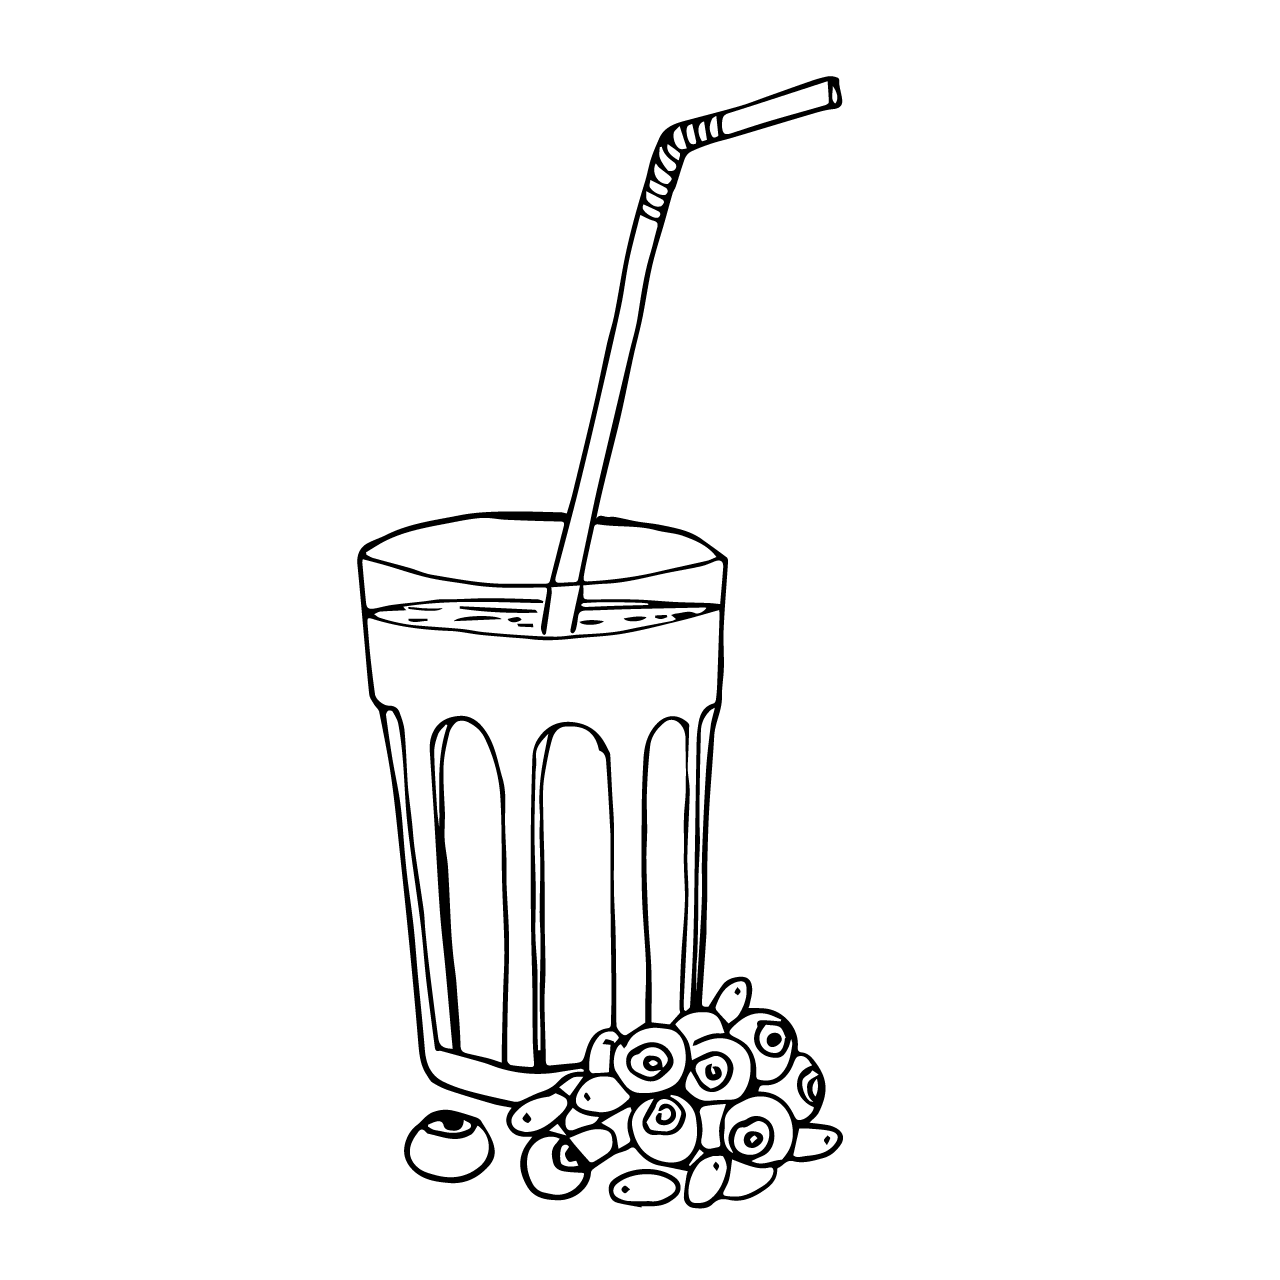 Shake Illustration